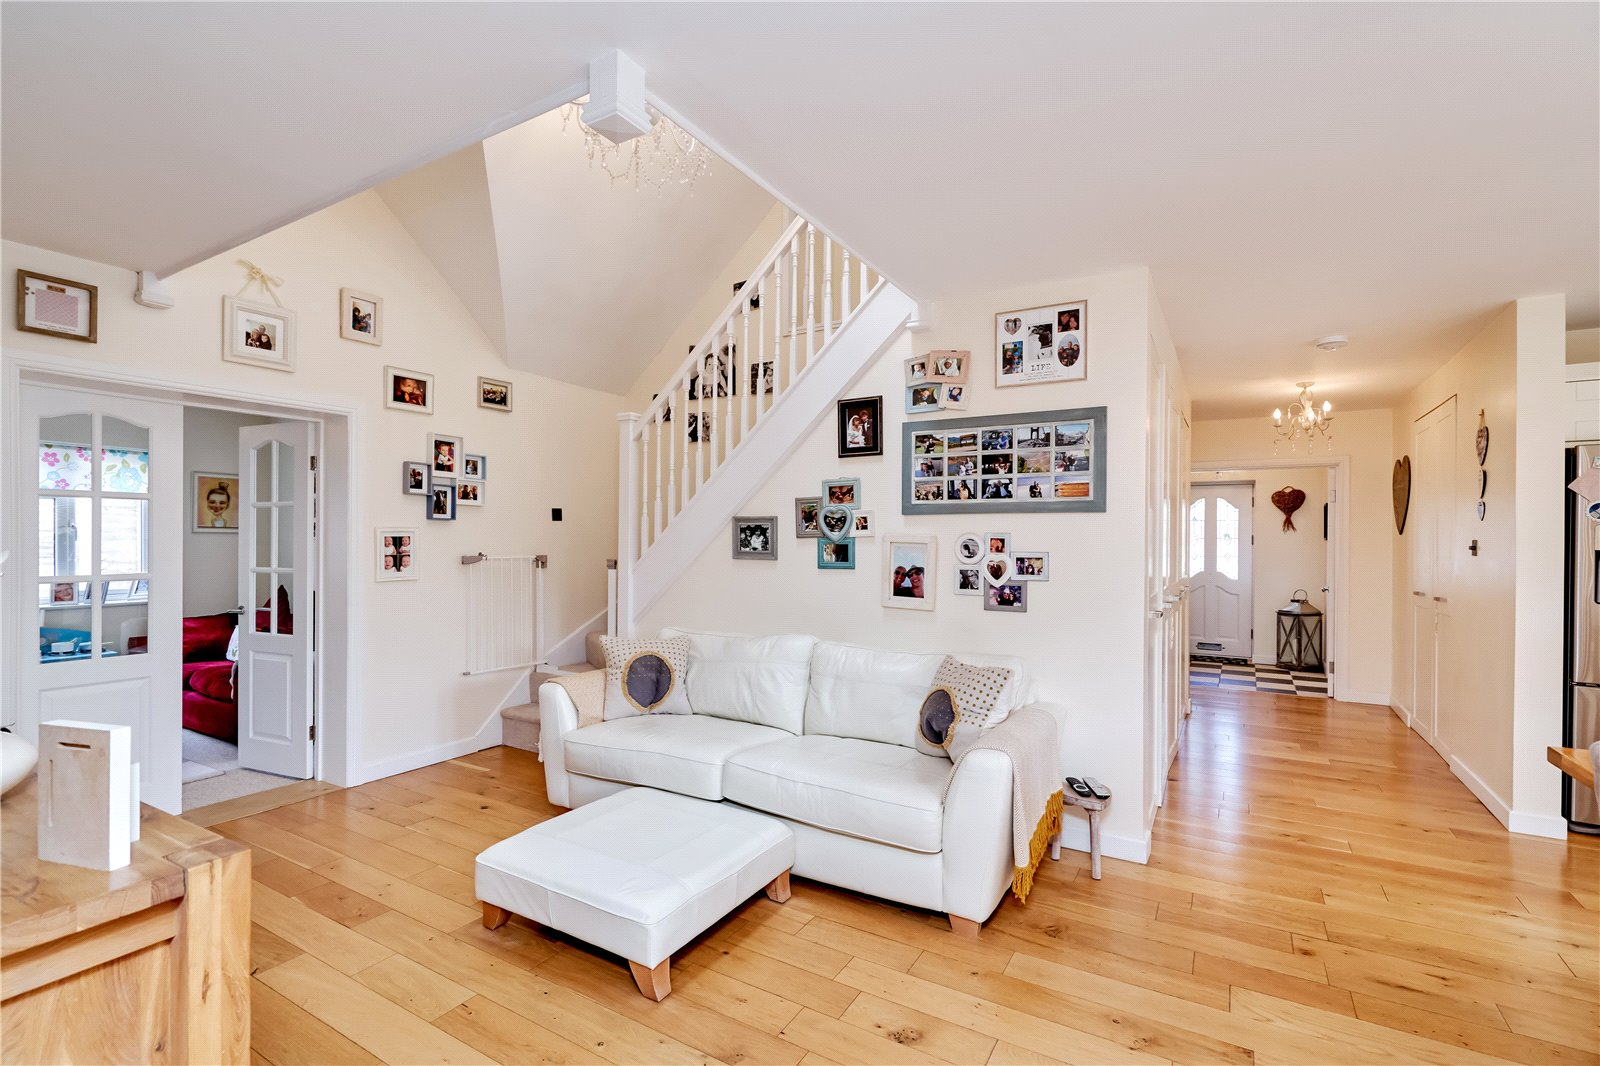 4 bed house for sale in Heathbrow Road, Old Welwyn  - Property Image 10